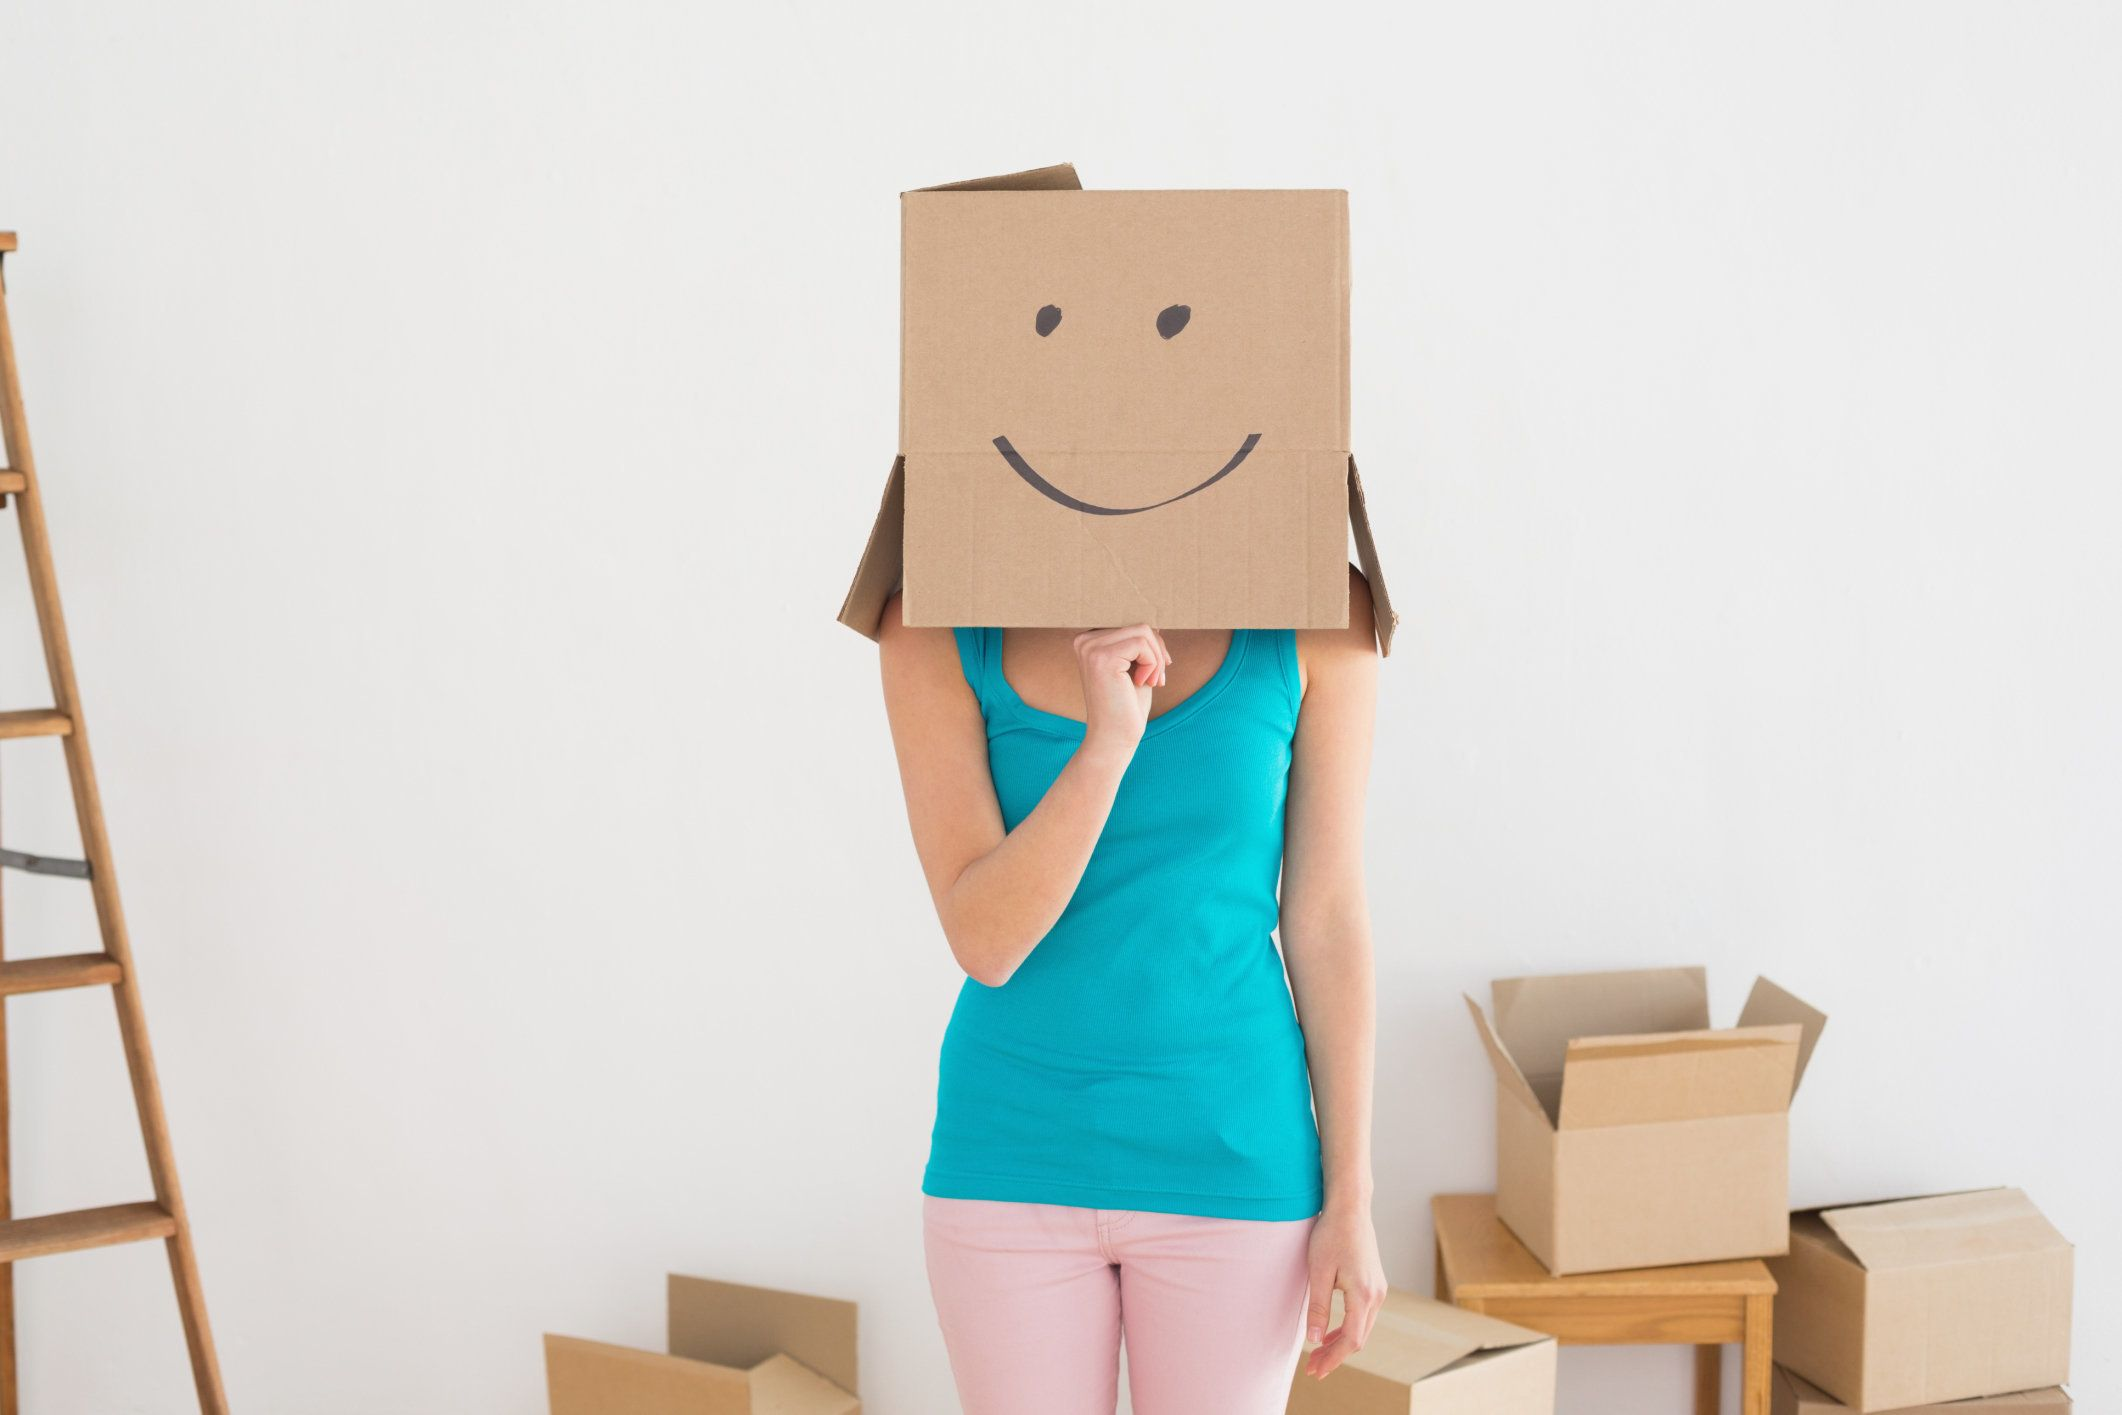 Woman in blue tank top with smiley cardboard box over face